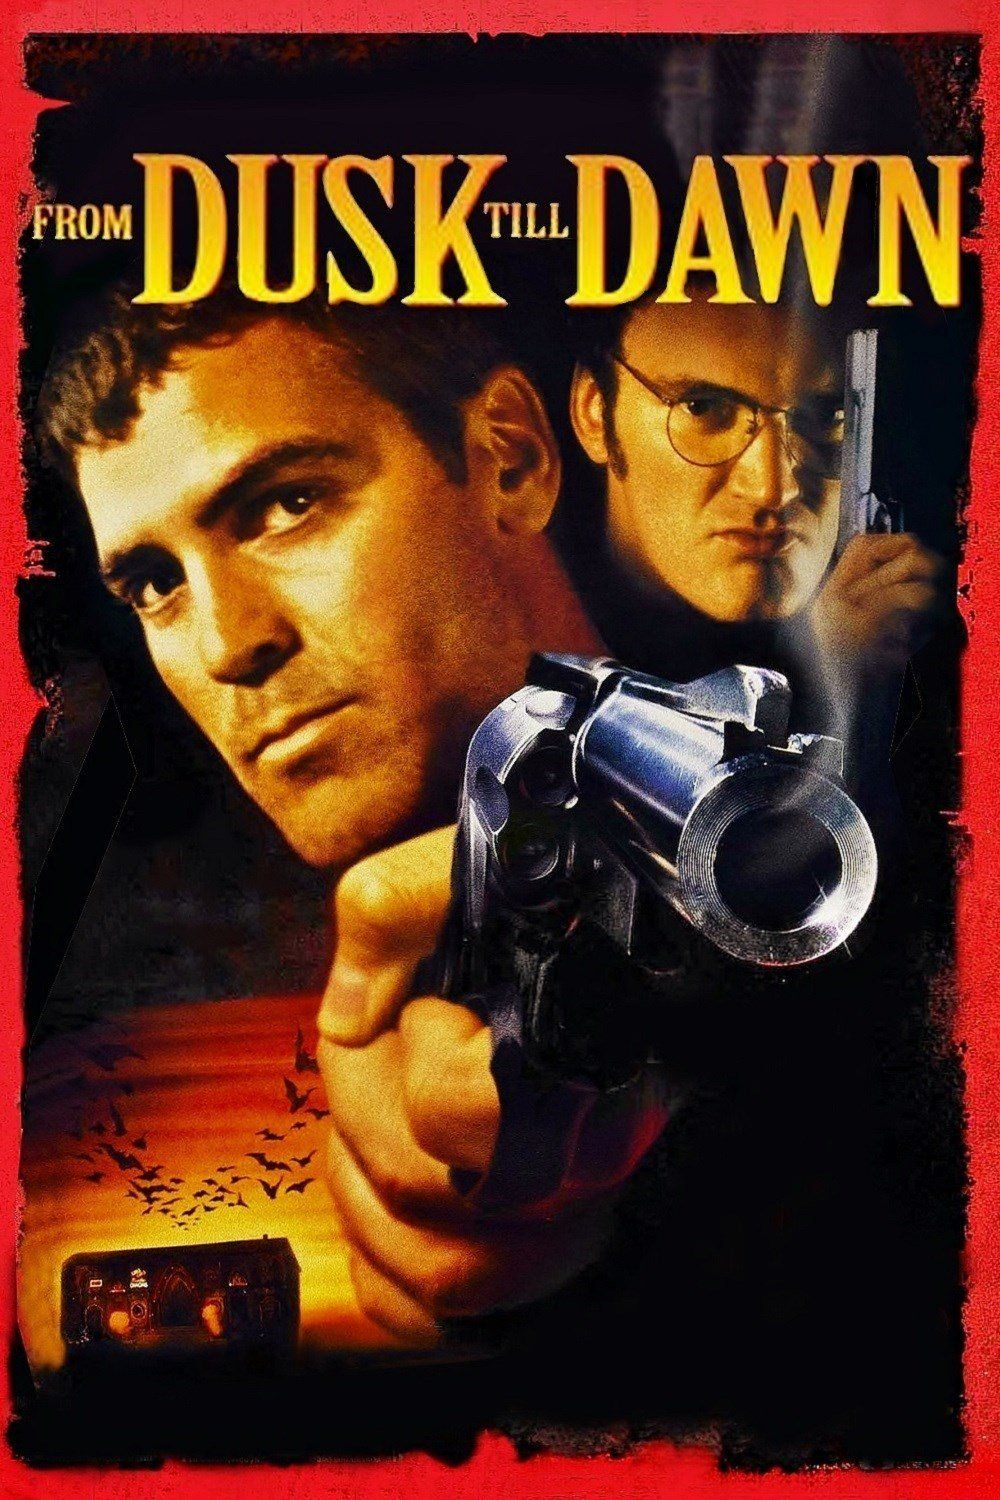 Movie Film Fromdusktilldawn Remember This From Dusk Till Dawn 1996 Movie Throwback Horror Synopsis Tw Dawn Movie Vampire Movies Horror Movie Posters